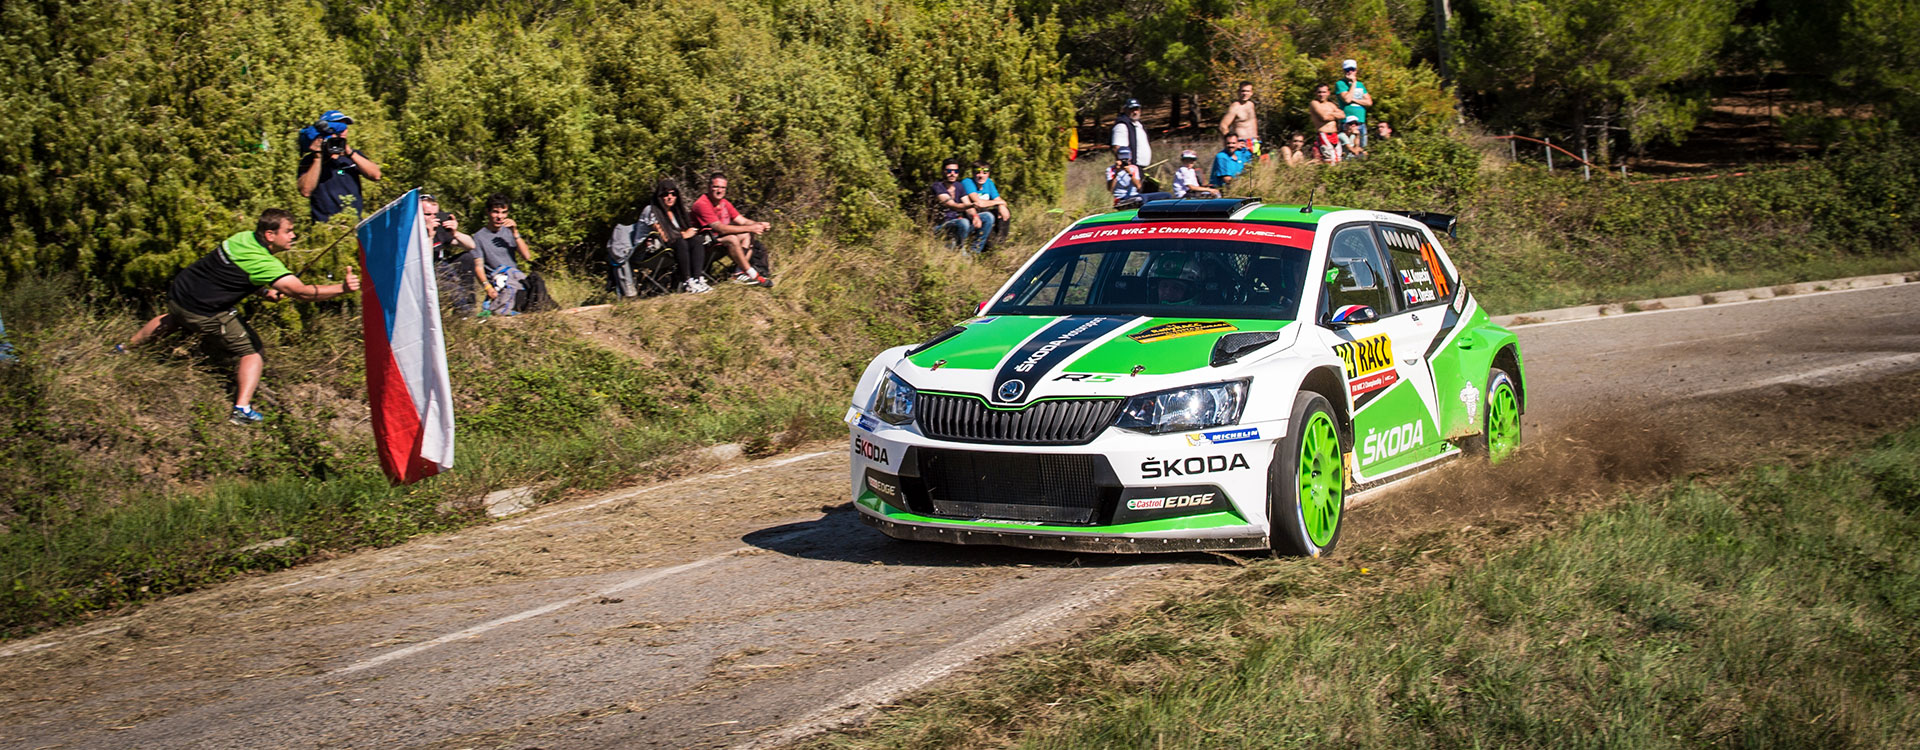 WRC Spain: Jan Kopecký takes the top position